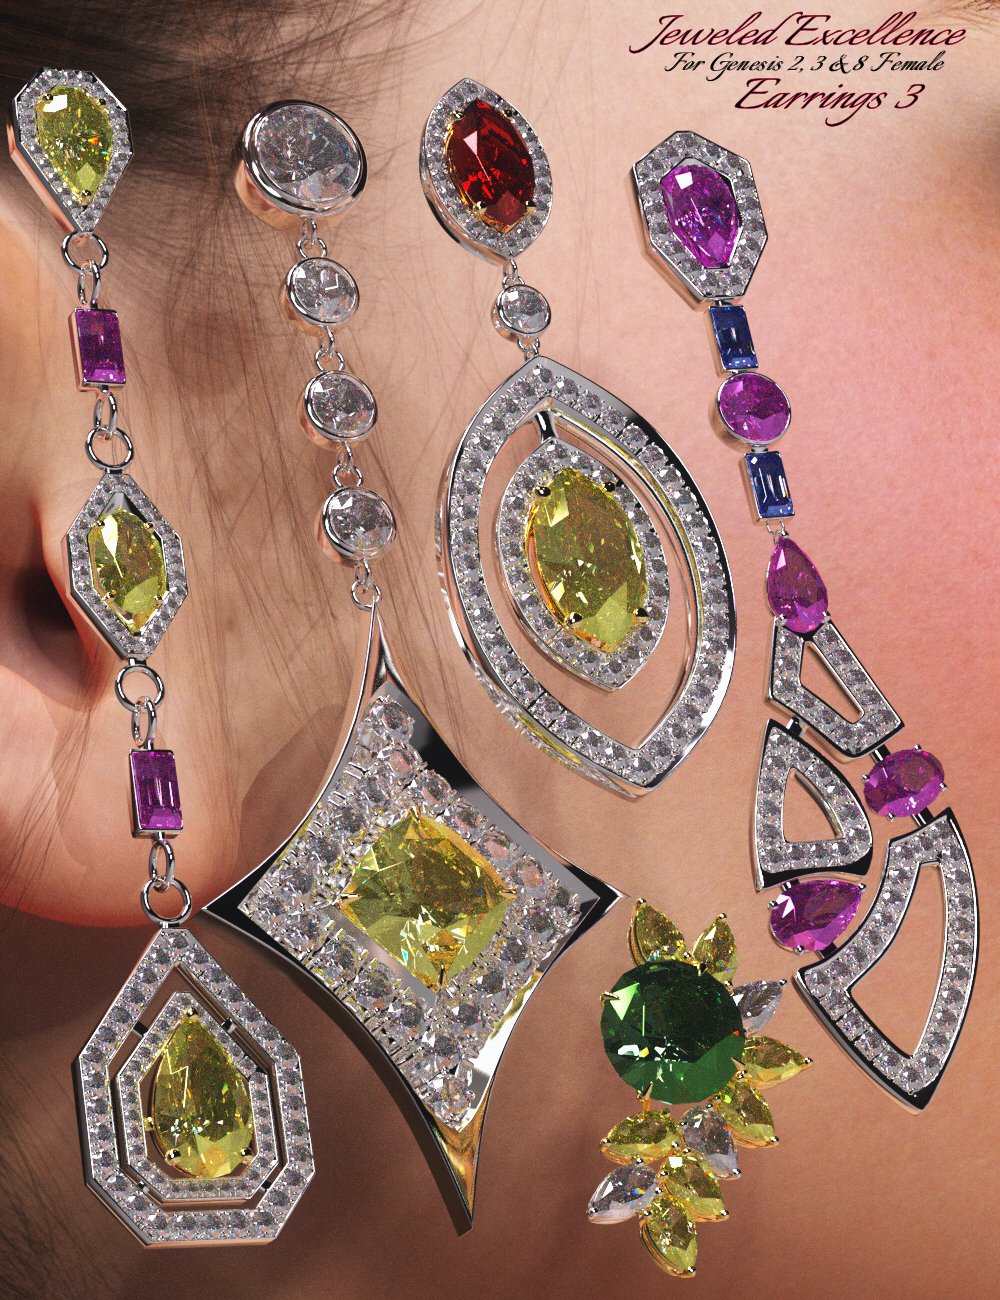 Jeweled Excellence Earrings 3 for Genesis 2, 3 and 8 Female(s) by: Mattymanx, 3D Models by Daz 3D